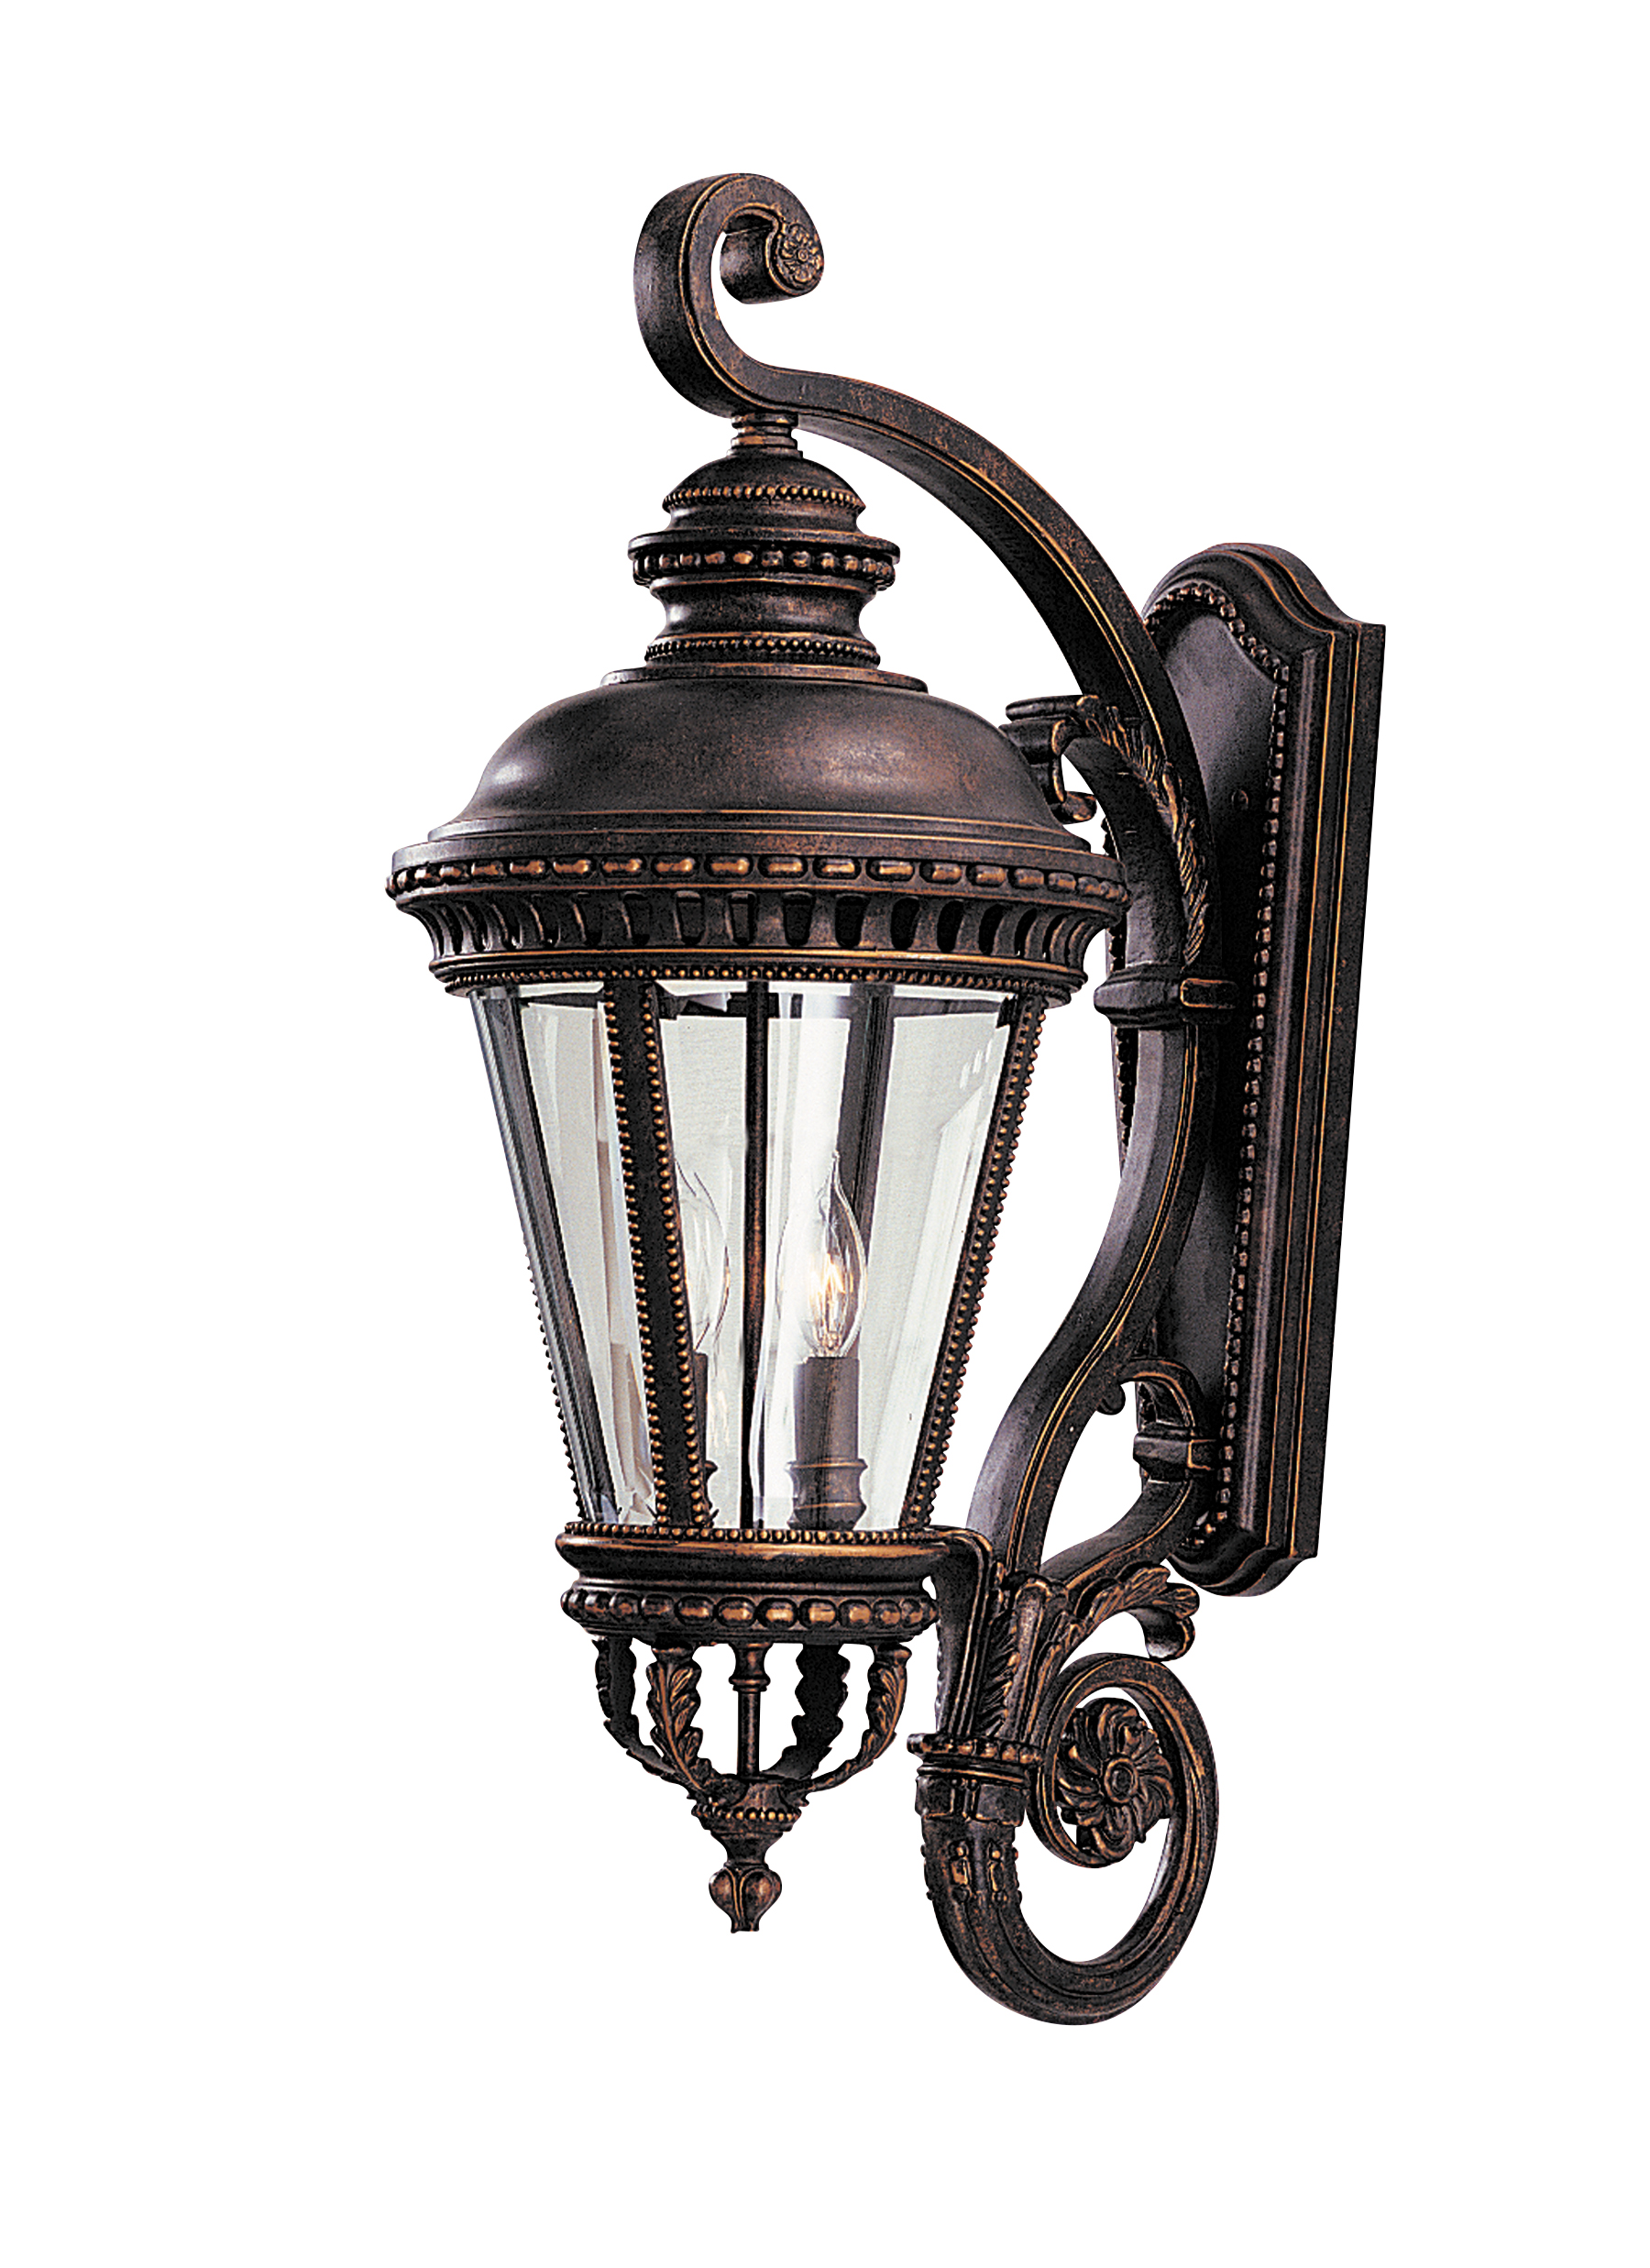 Murray Feiss Outdoor Lighting Ol1904gbz4 light wall lanterngrecian bronze loading zoom workwithnaturefo